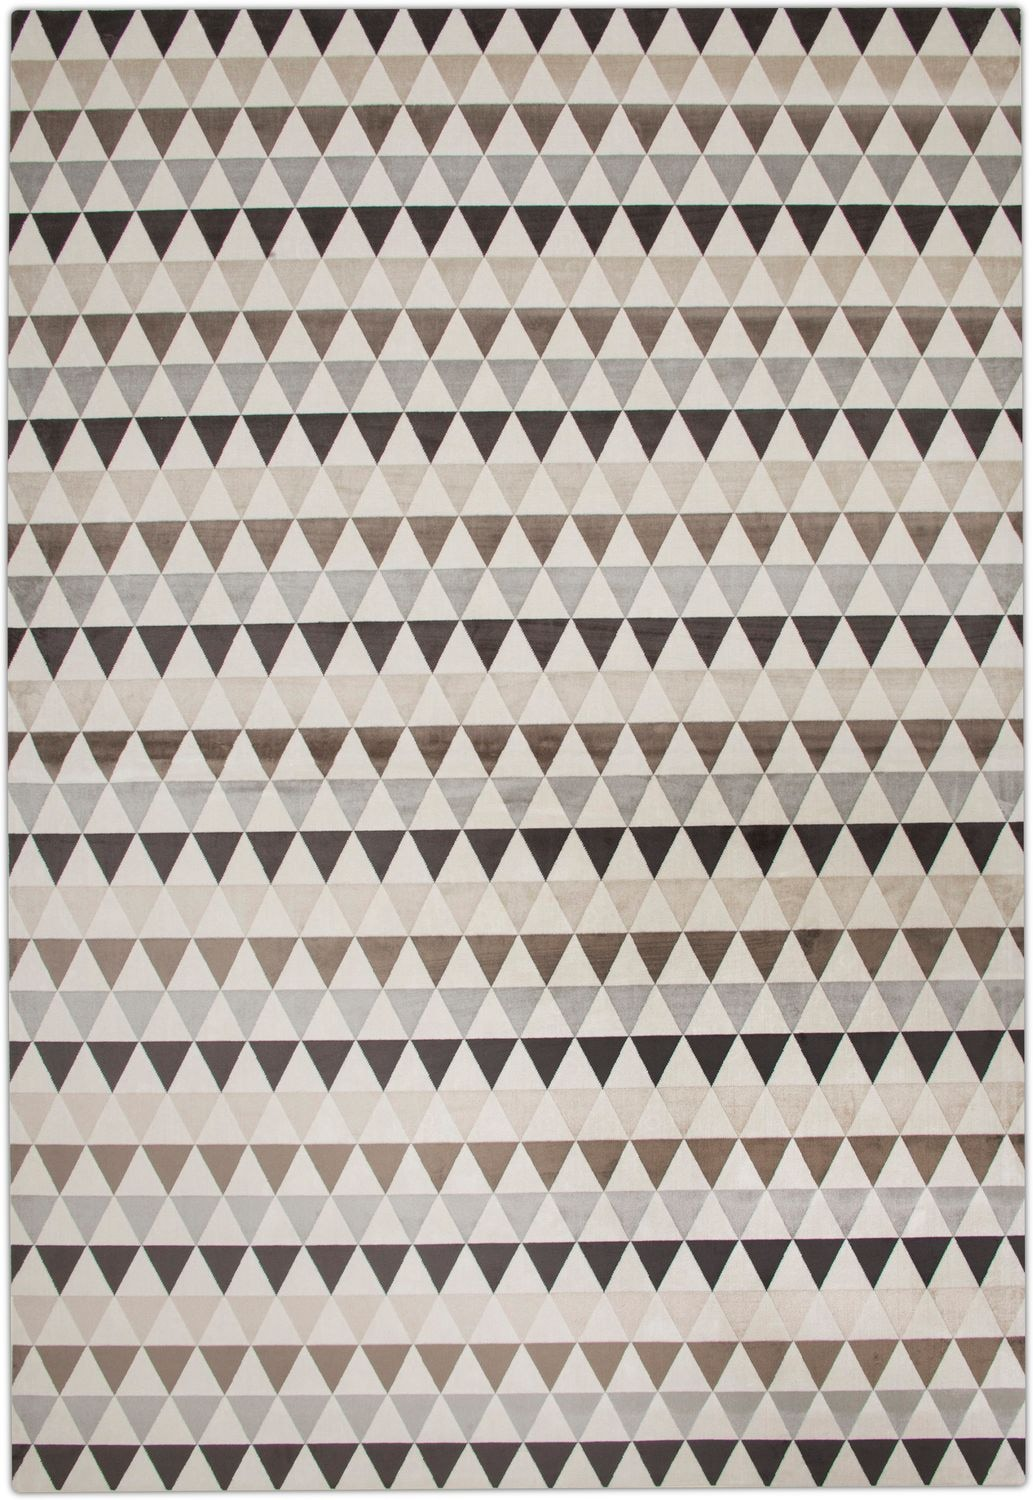 Rugs - Sonoma Area Rug - Ivory and Chocolate